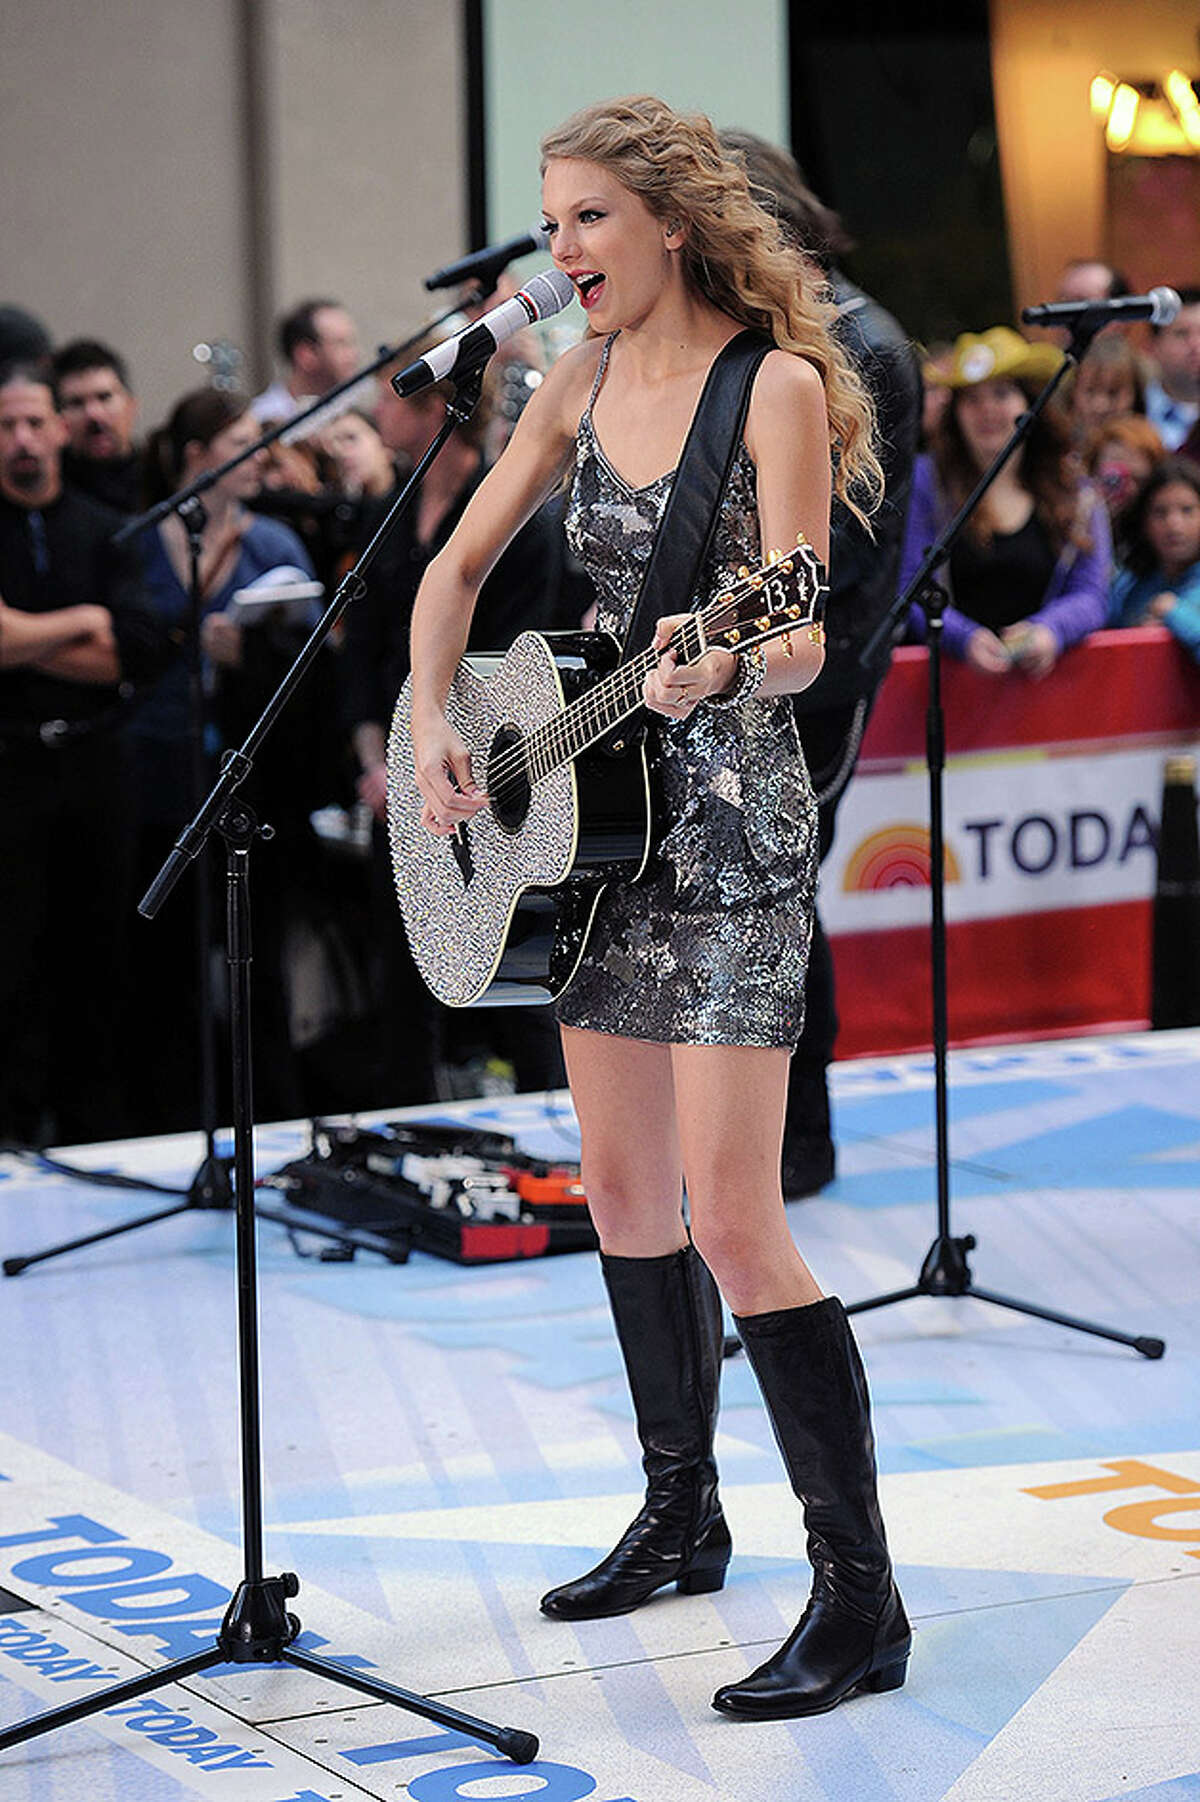 NEW YORK - OCTOBER 26: Musician Taylor Swift performs on NBC's